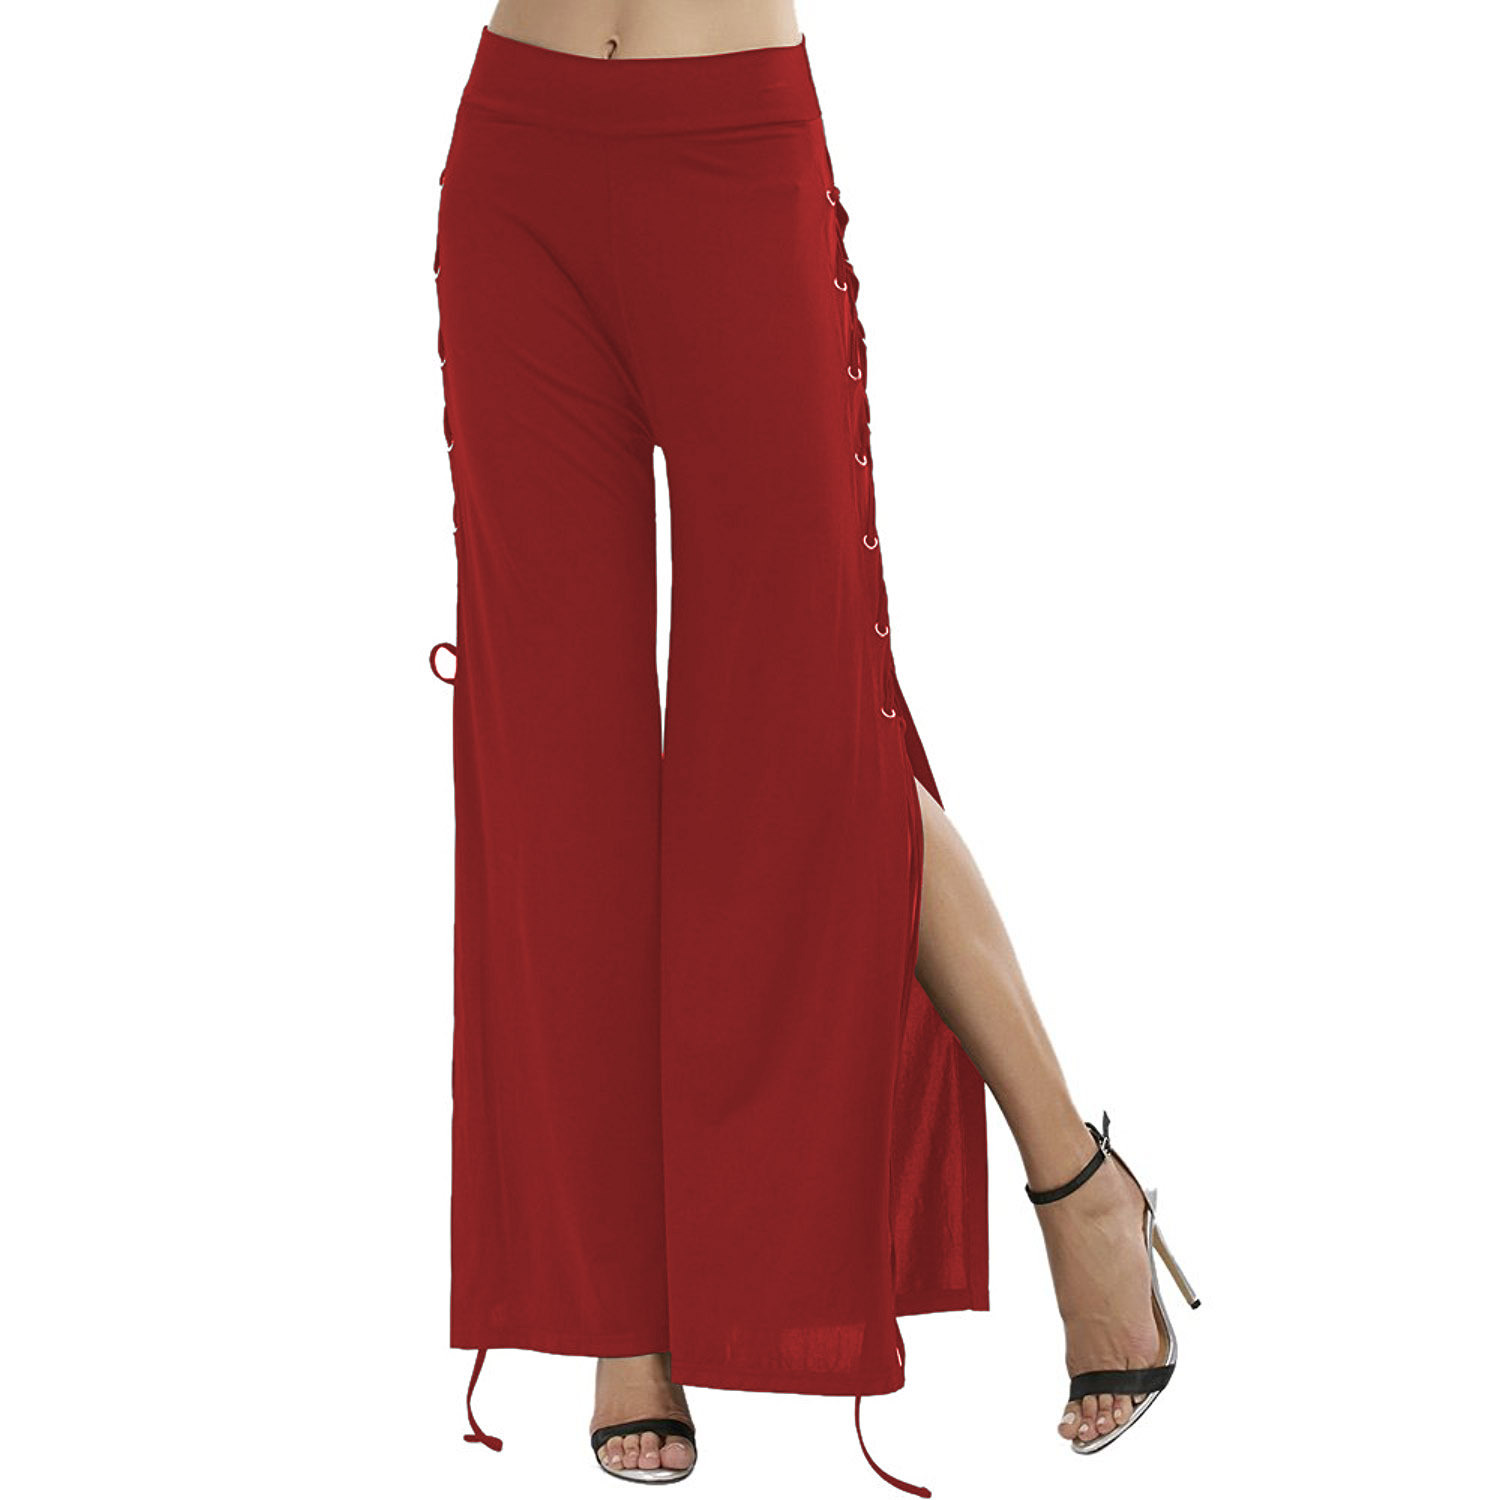 most comfortable style pants trends jeans ever designed thefashionspot comforter top brands